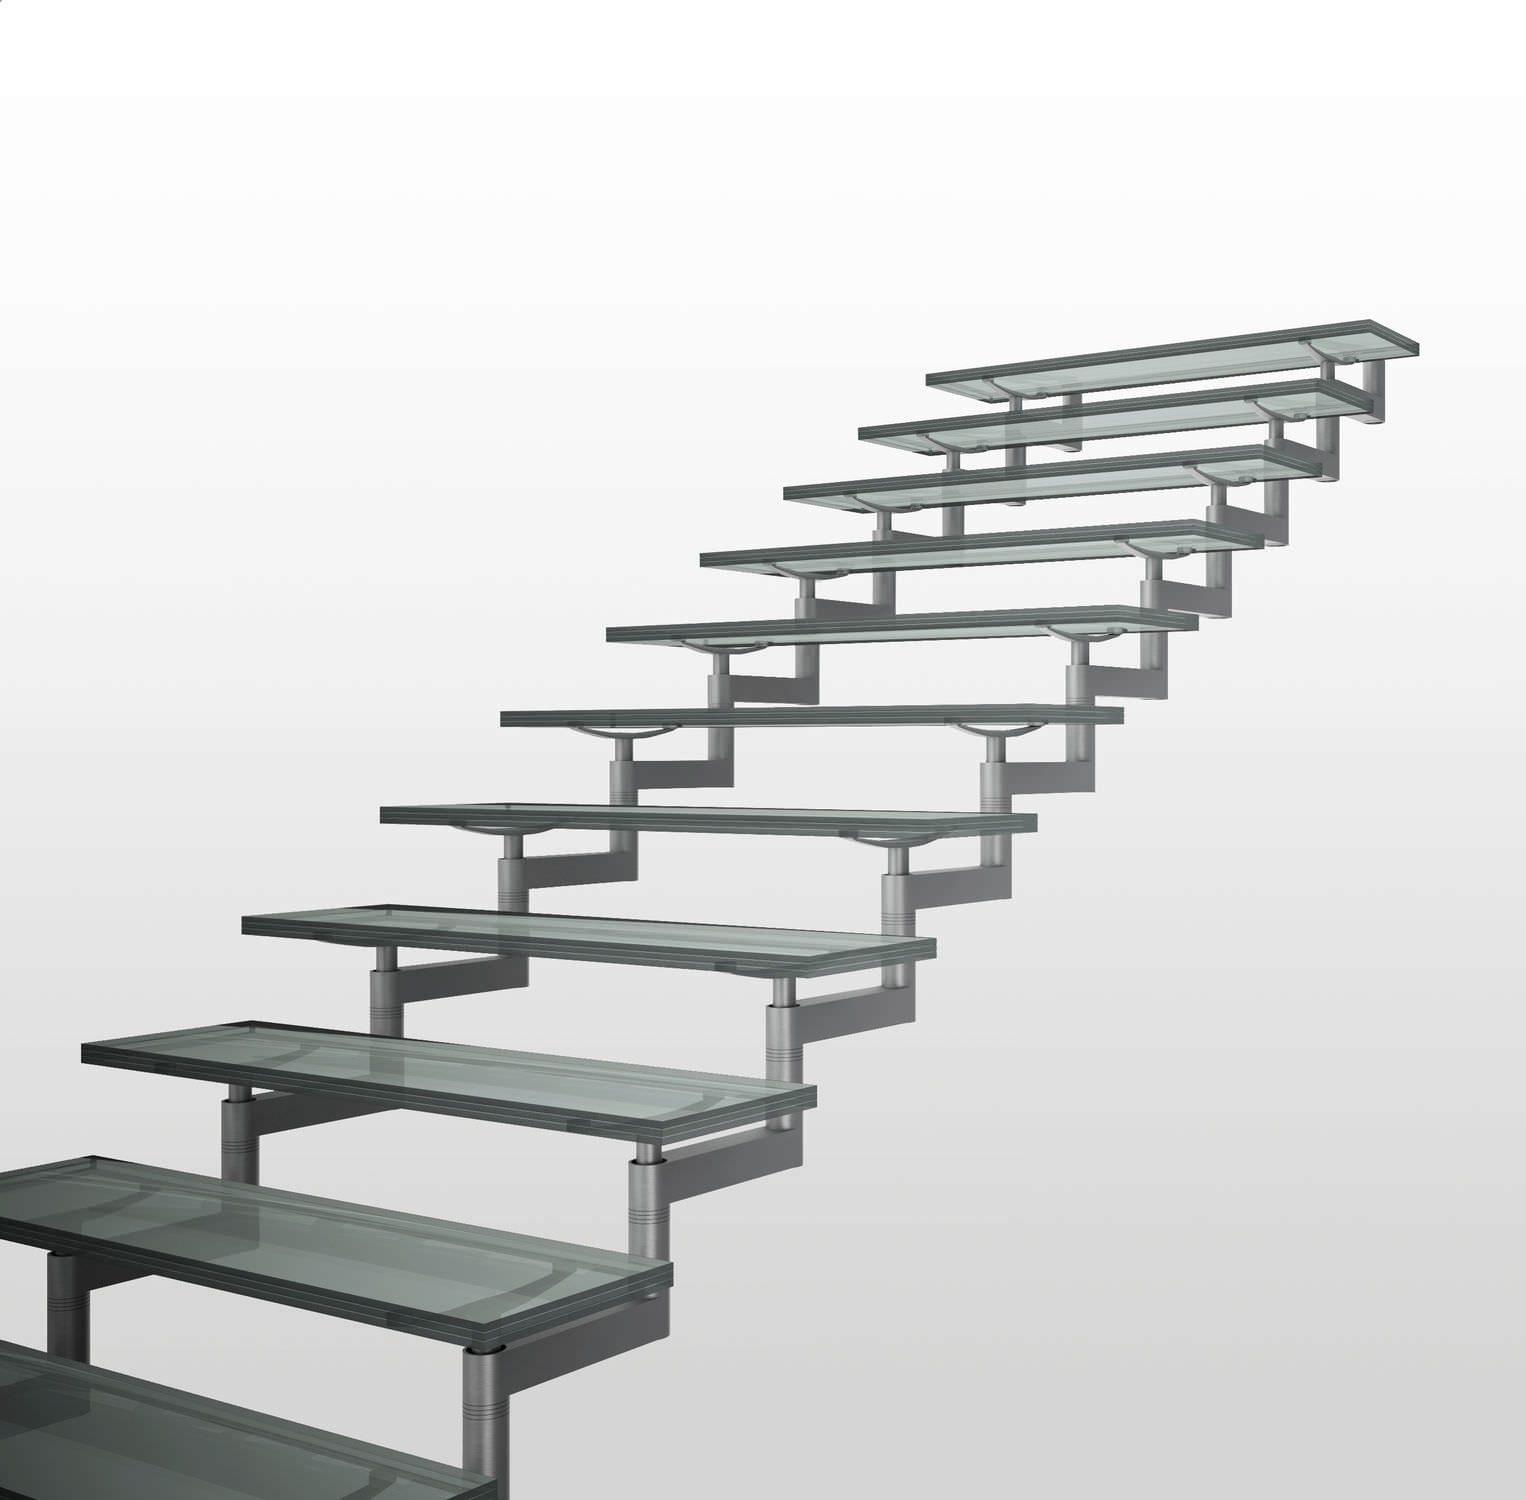 Quarter Turn Staircase Backbone Double Iam Design Stainless   Steel Steps For Stairs   Chequer Plate   Fabricated   Wire Mesh   Prefabricated   Corrugated Metal